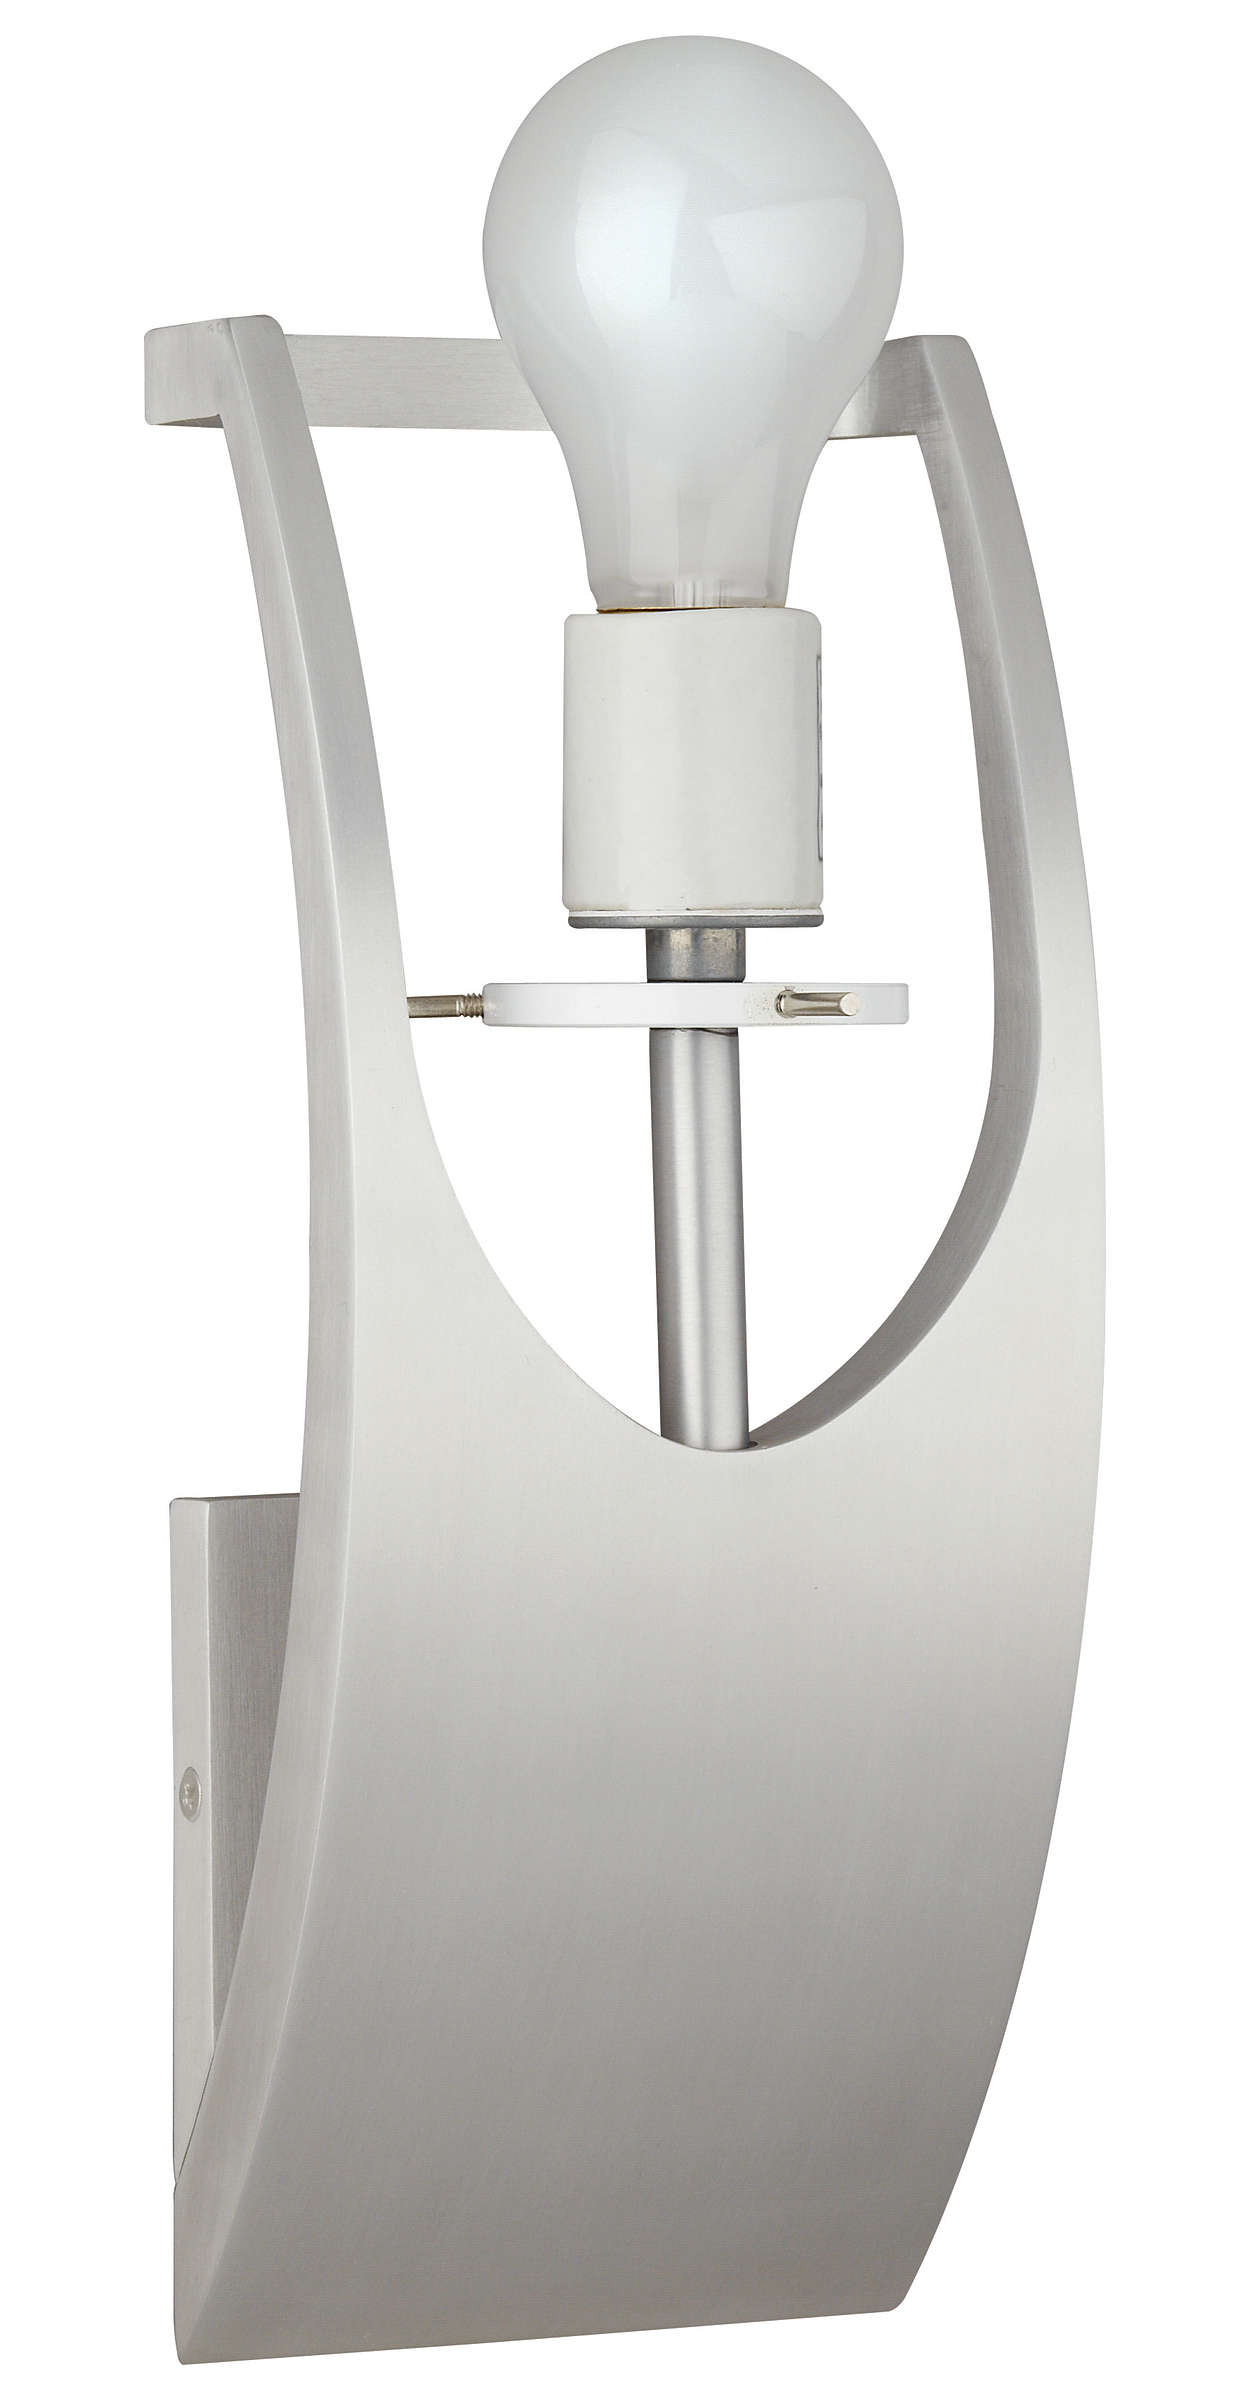 James 1-light Bath in Satin Aluminum finish